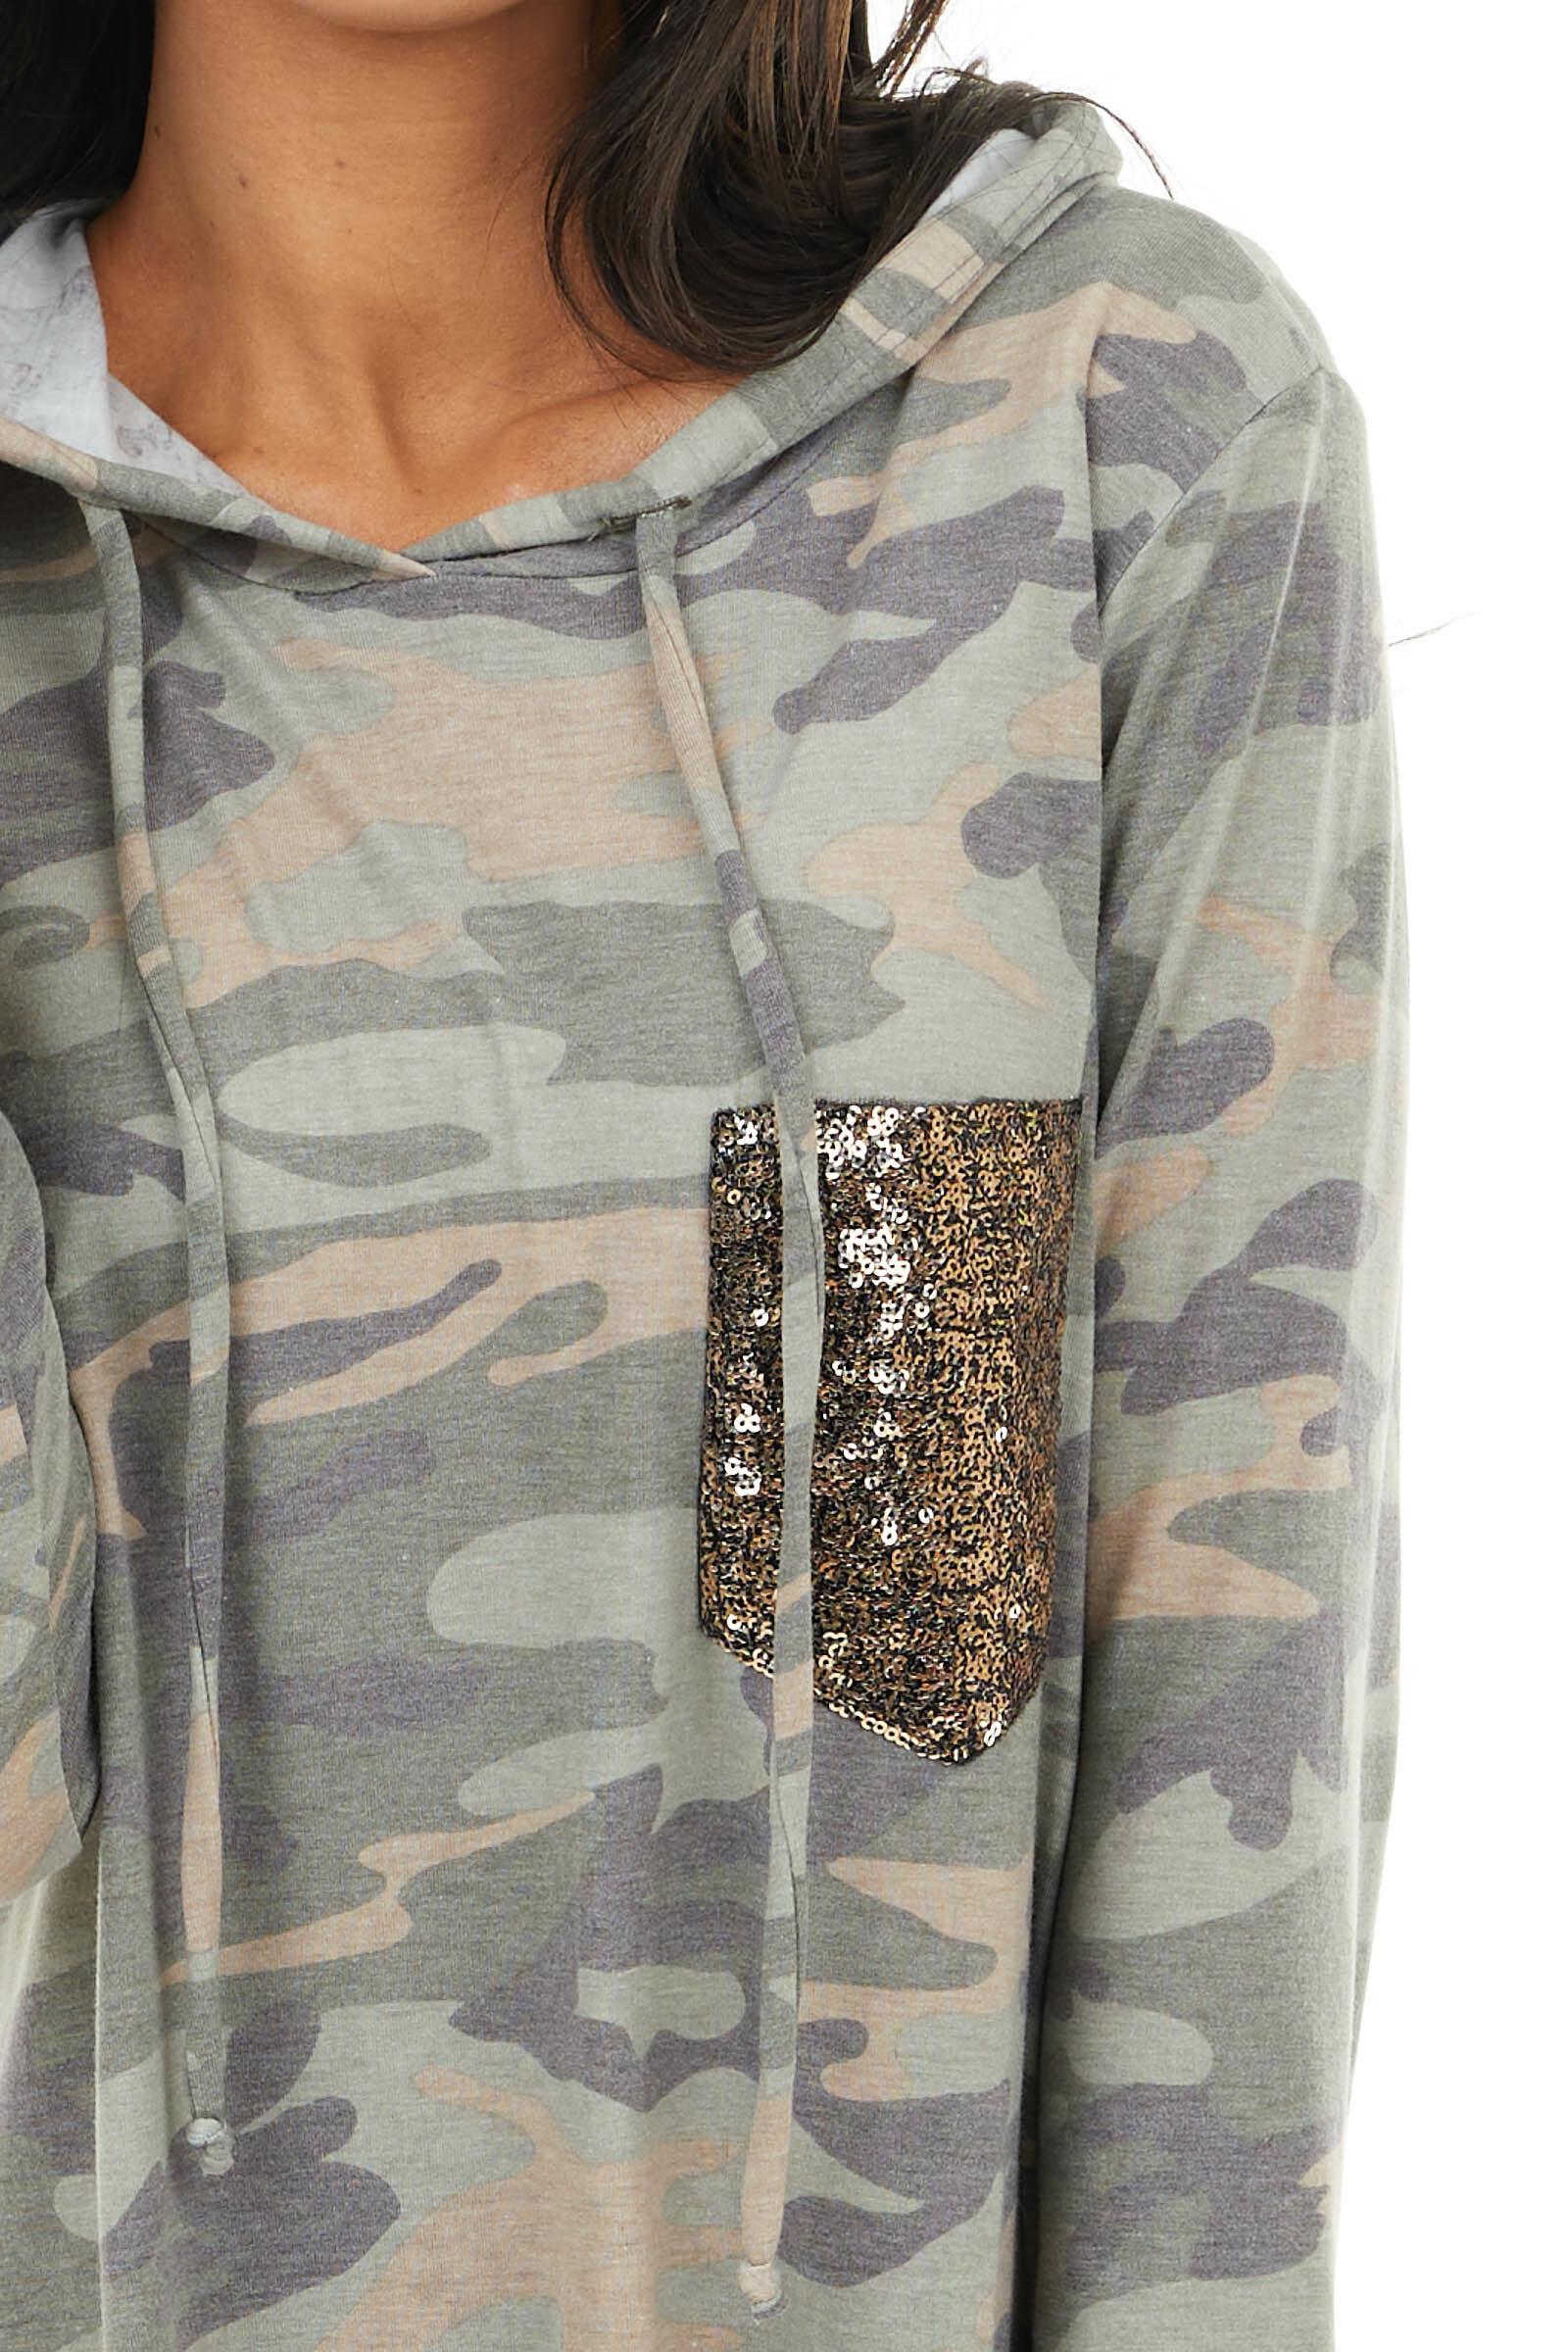 Sage Camo Print Drawstring Hoodie with Gold Sequin Pocket